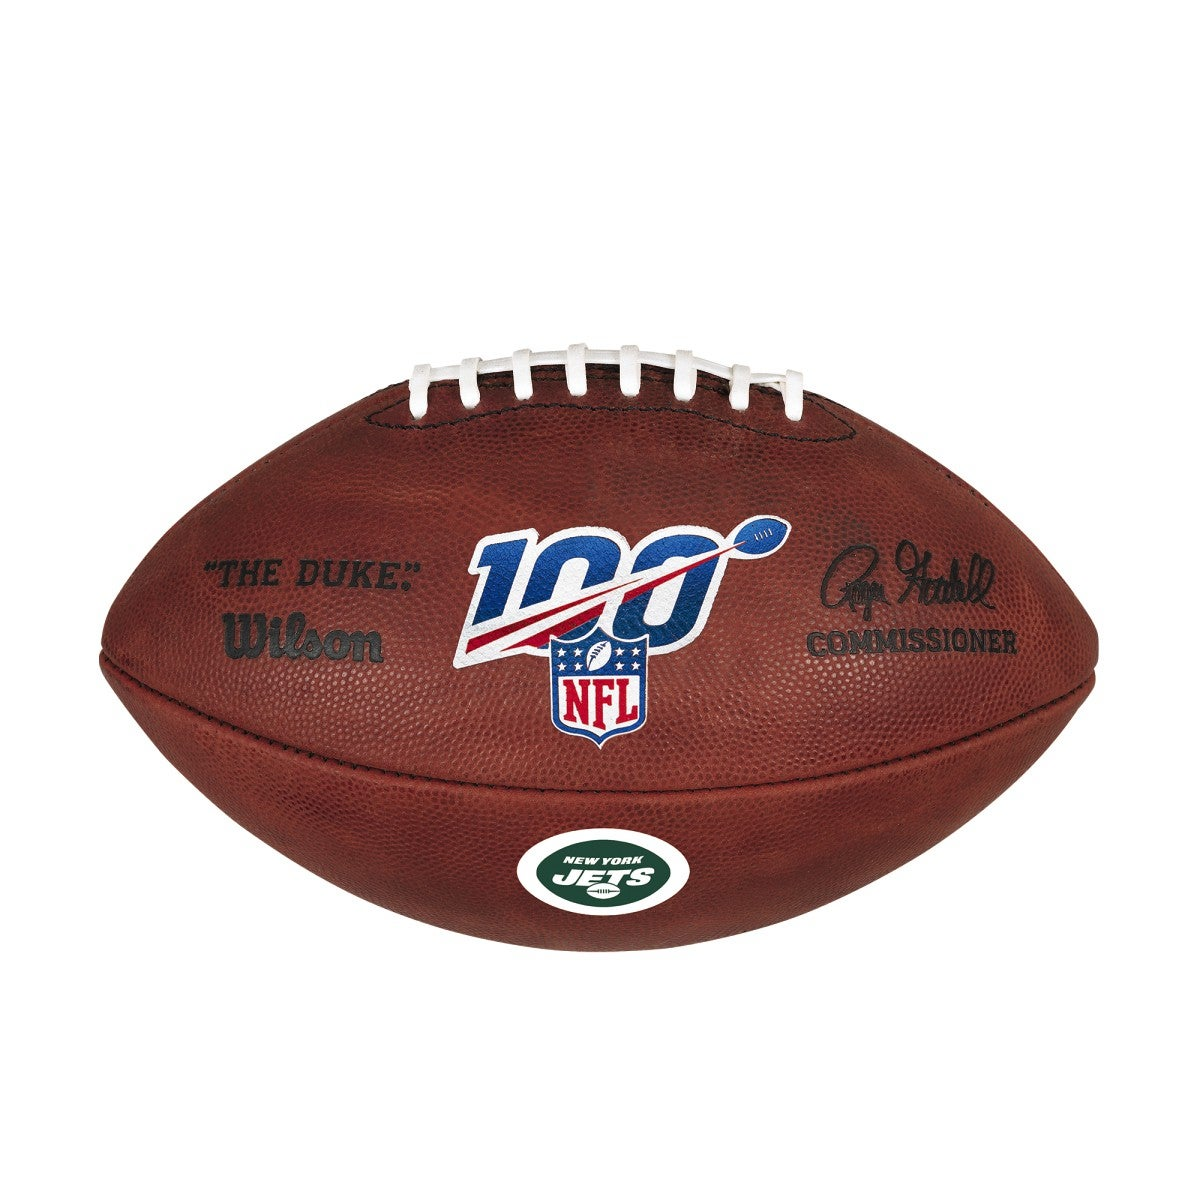 NFL 100 THE DUKE DECAL NFL FOOTBALL - NEW YORK JETS